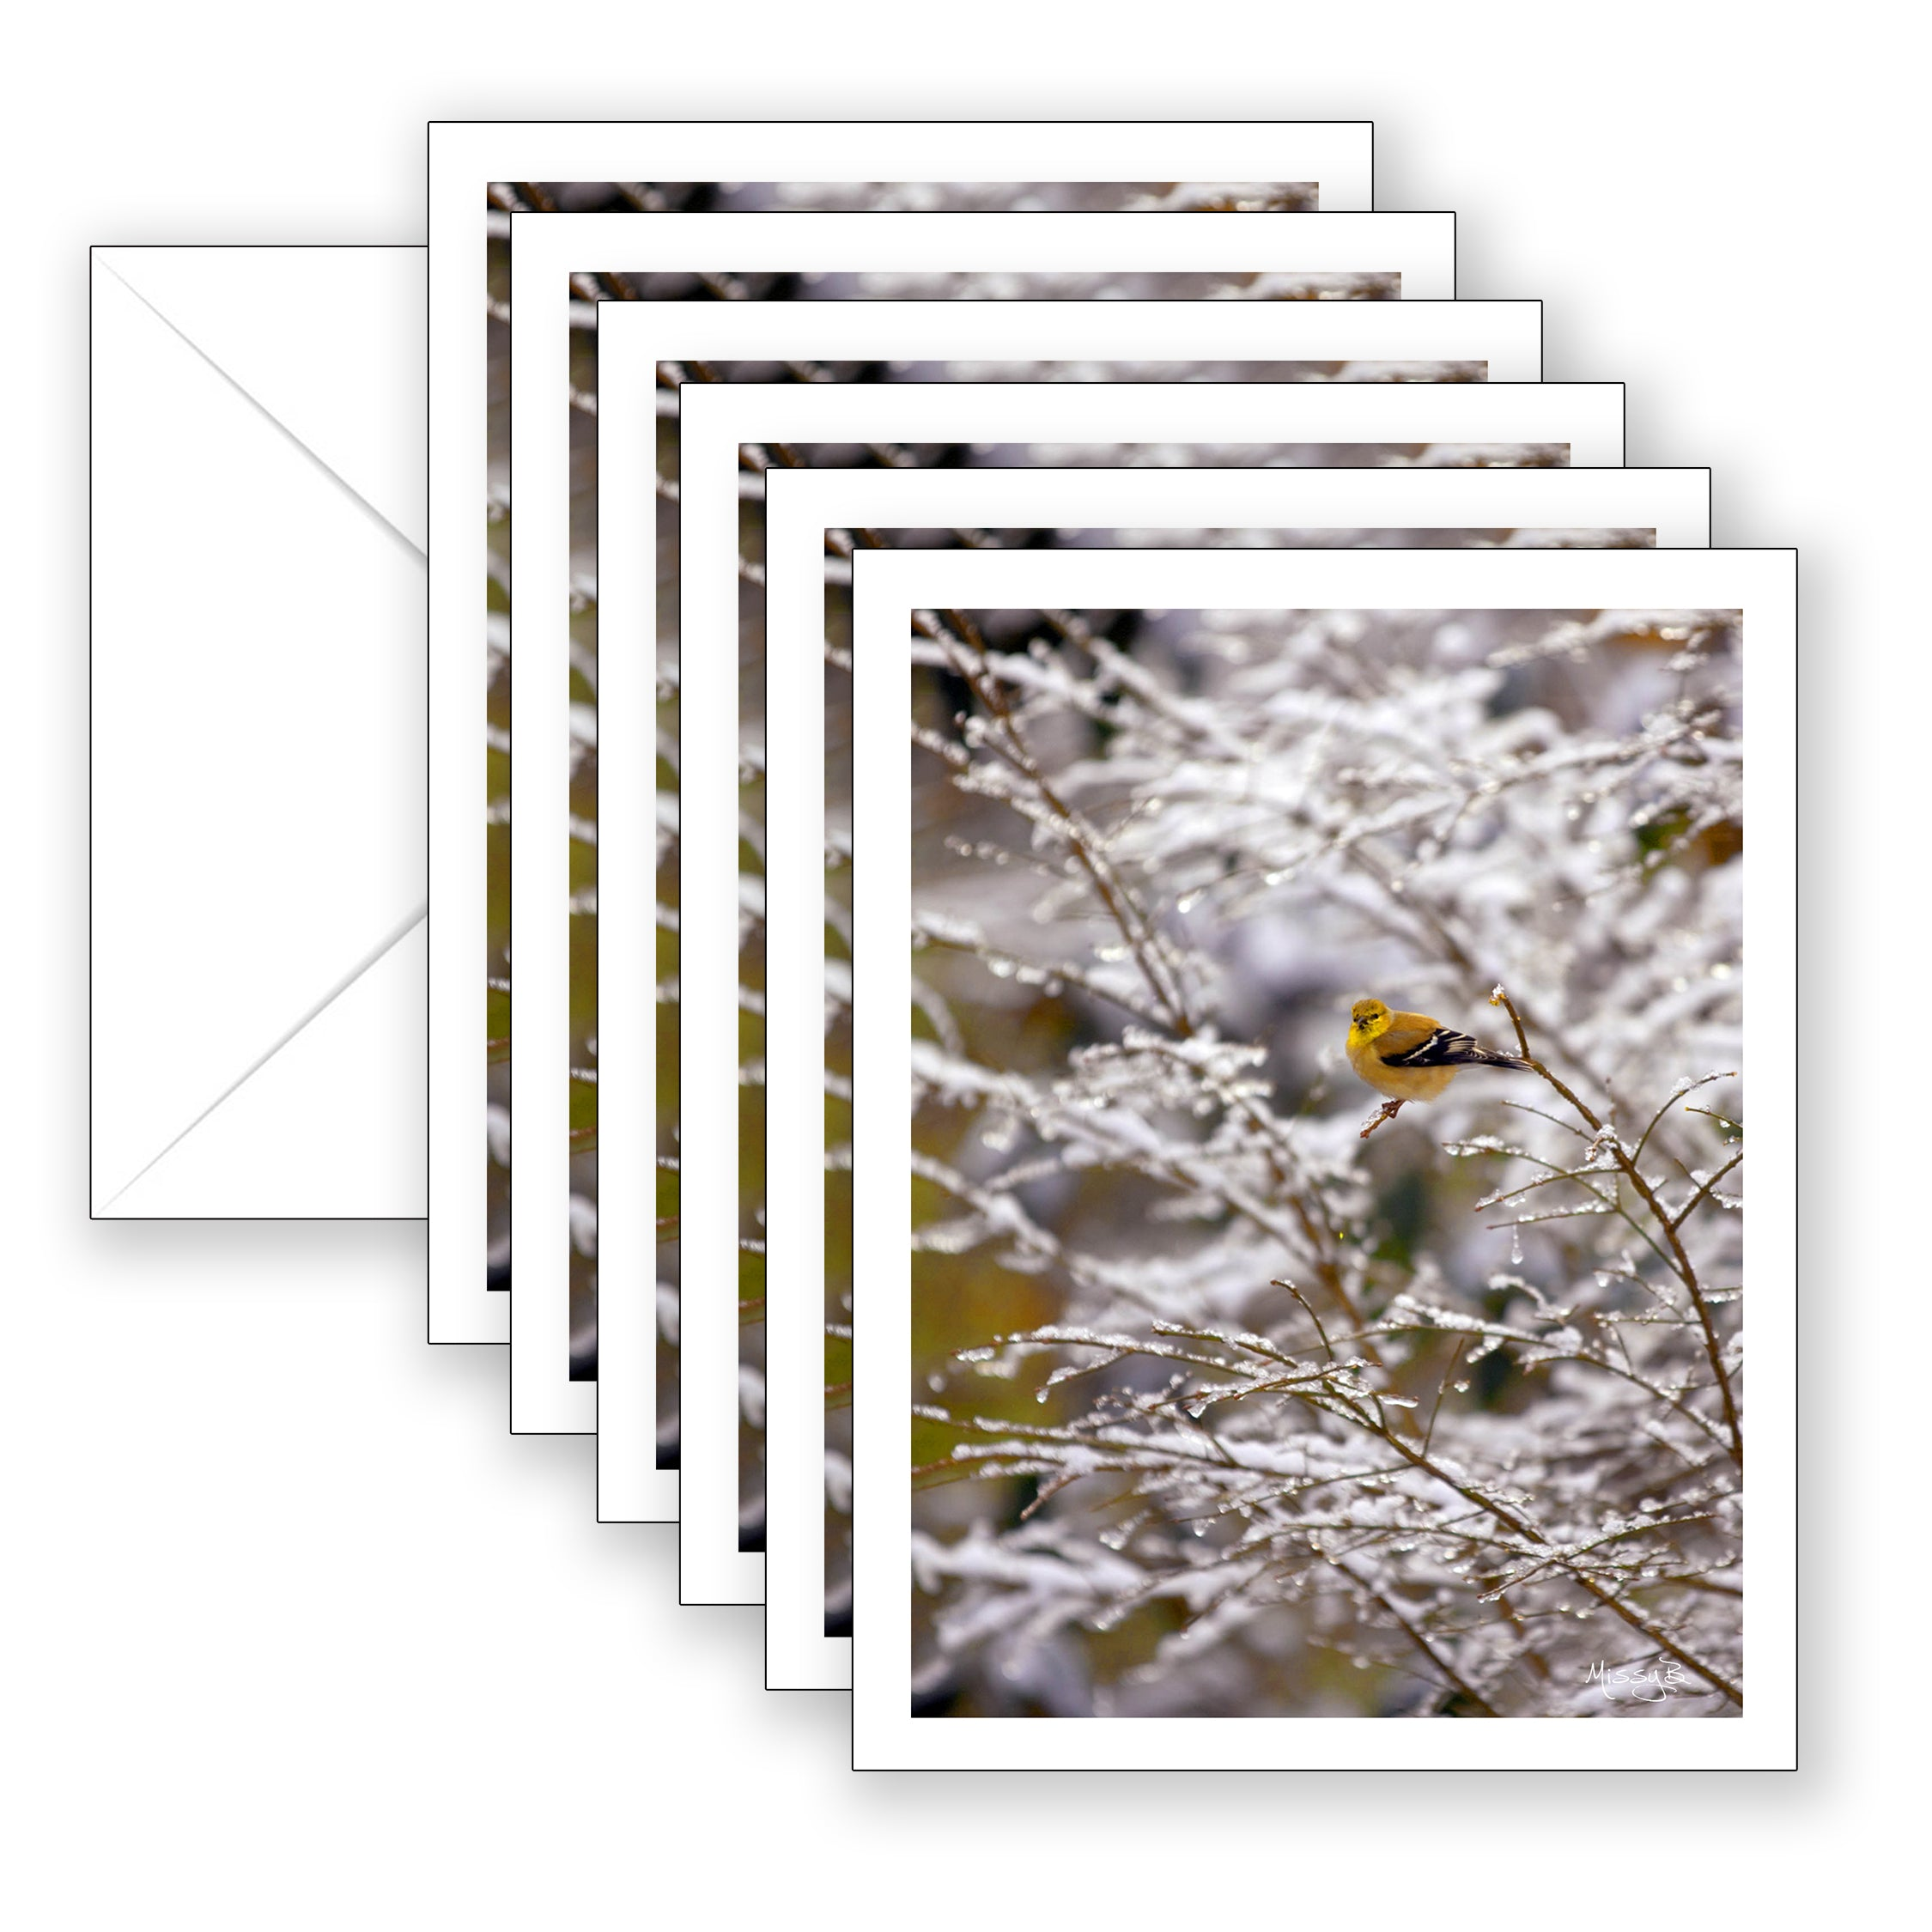 Missy's Yellow Bird Boxed Notecard Collection